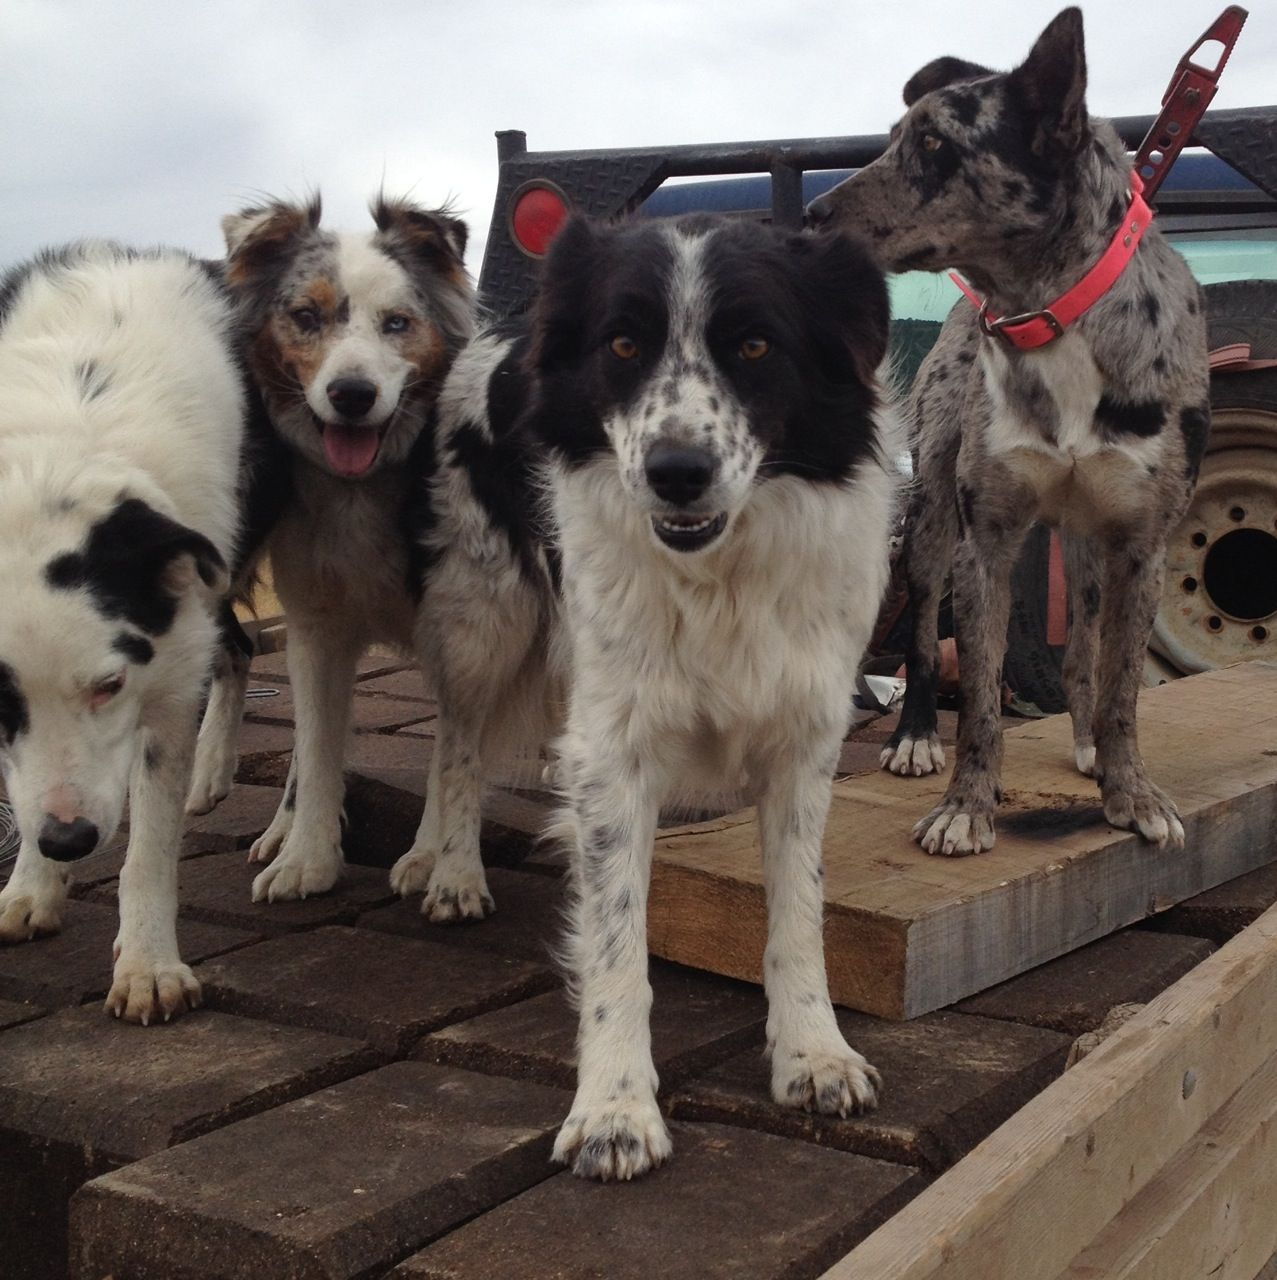 Working Cowdogs! A great article about how cow dogs are